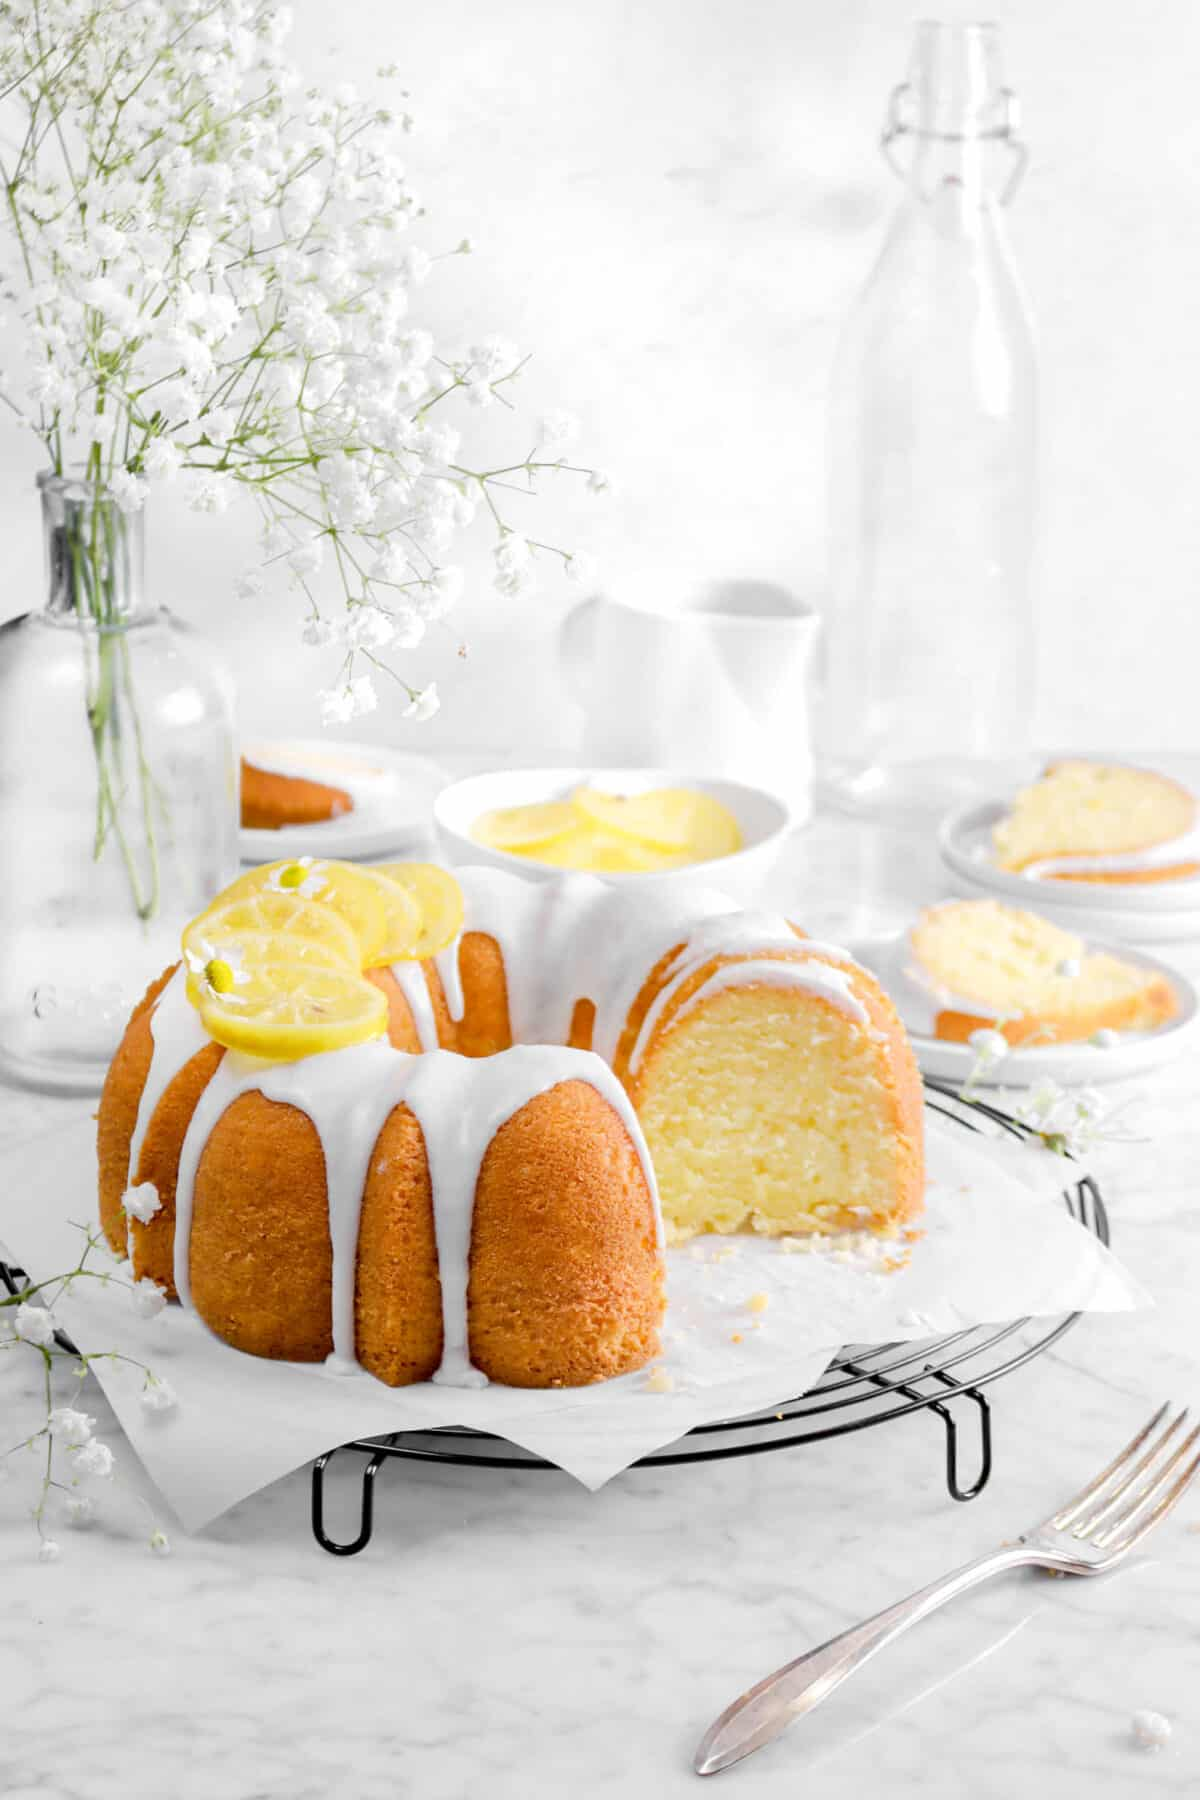 lemon pound cake with slices behind, candied lemon slices, and flowers with a fork